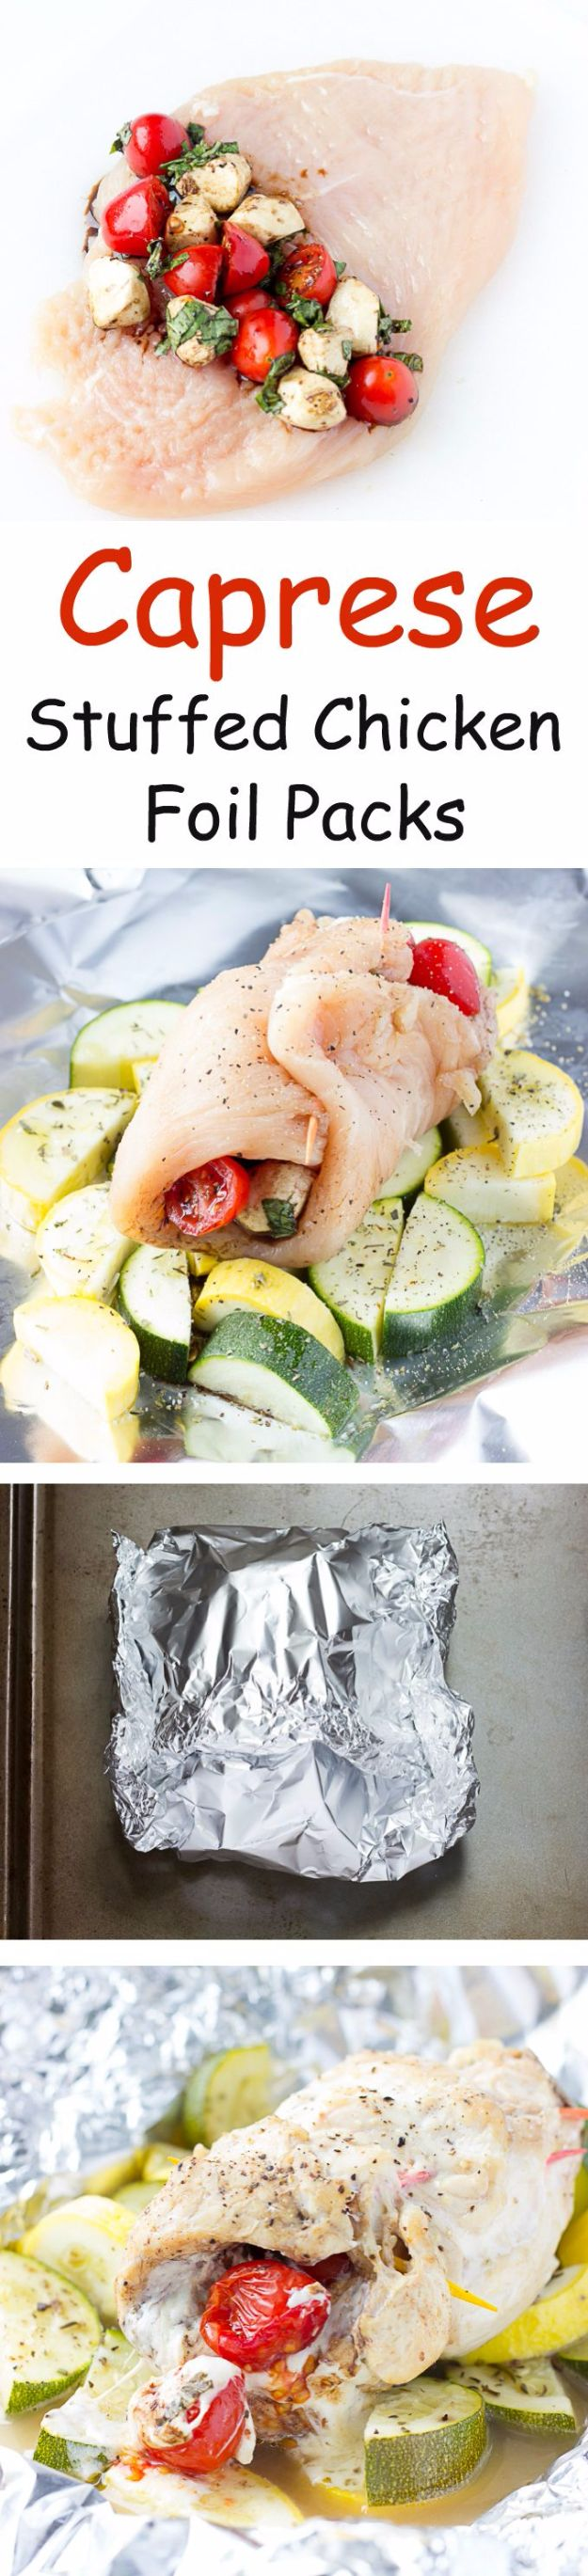 Tin Foil Camping Recipes - Caprese Stuffed Chicken Foil Packs - DIY Tin Foil Dinners, Ideas for Camping Trips and On Grill. Hamburger, Chicken, Healthy, Fish, Steak , Easy Make Ahead Recipe Ideas for the Campfire. Breakfast, Lunch, Dinner and Dessert, Snacks all Wrapped in Foil for Quick Cooking http://diyjoy.com/tinfoil-camping-recipes